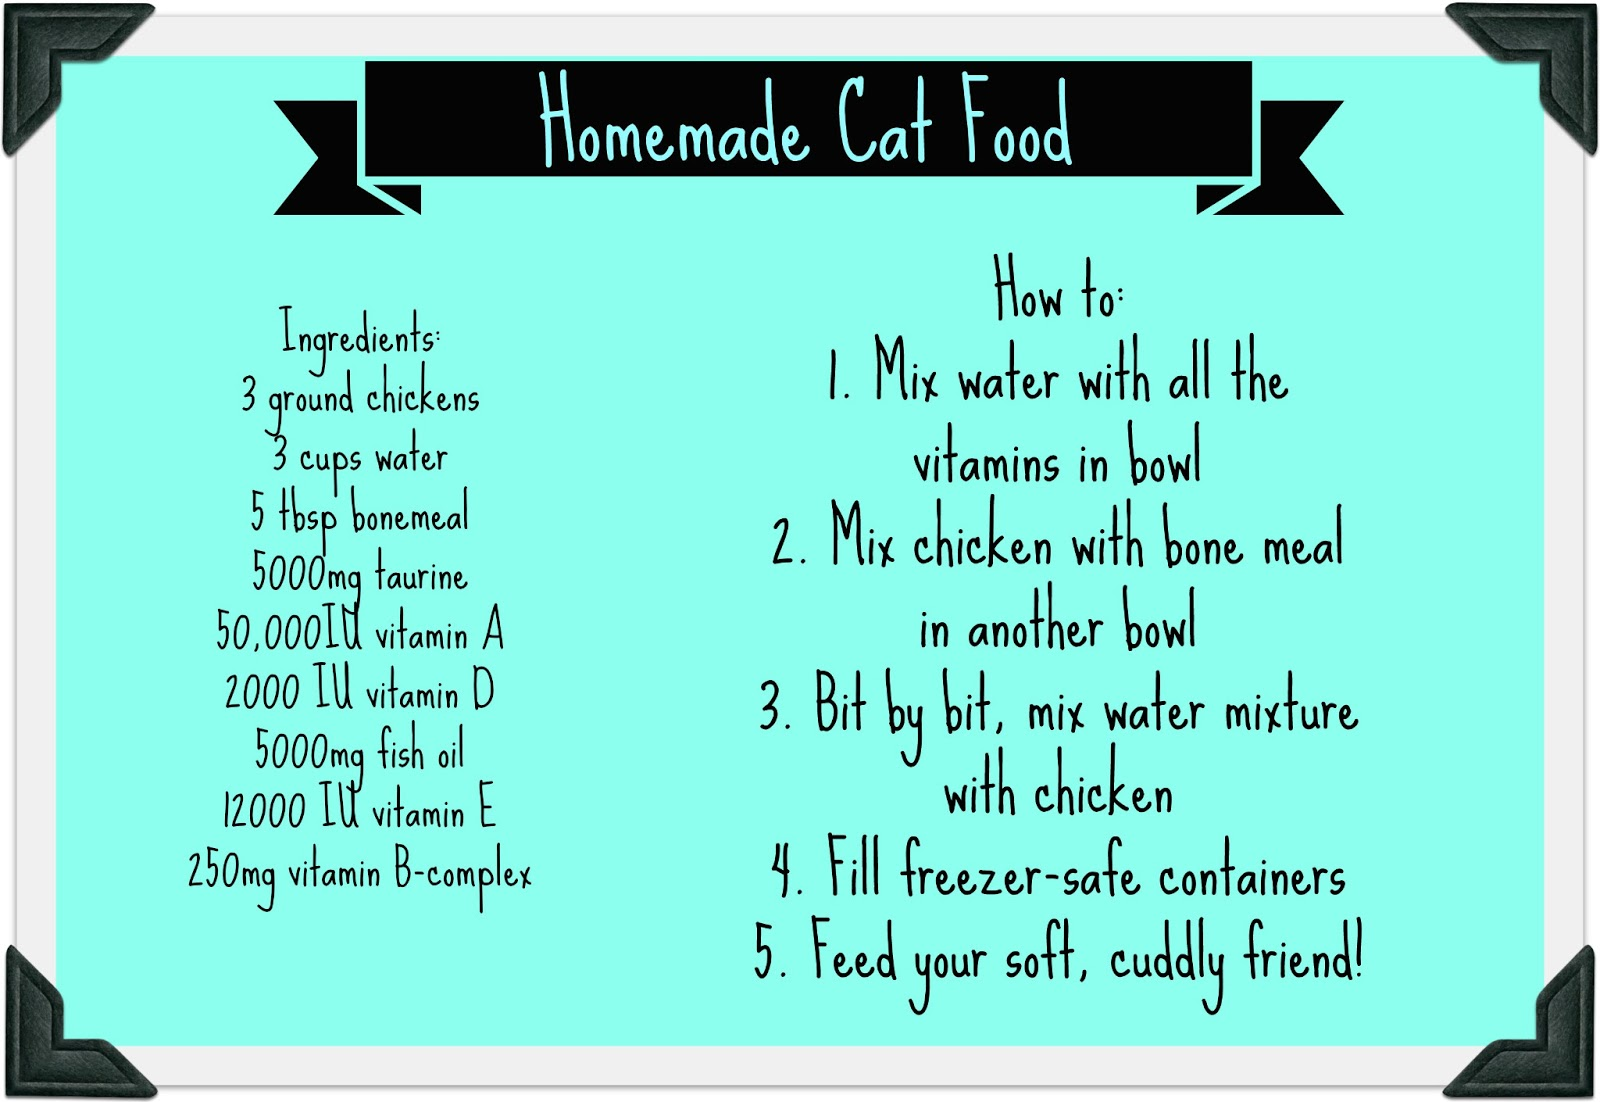 Homemade cat food recipes with chicken food fast recipes homemade cat food recipes with chicken forumfinder Choice Image